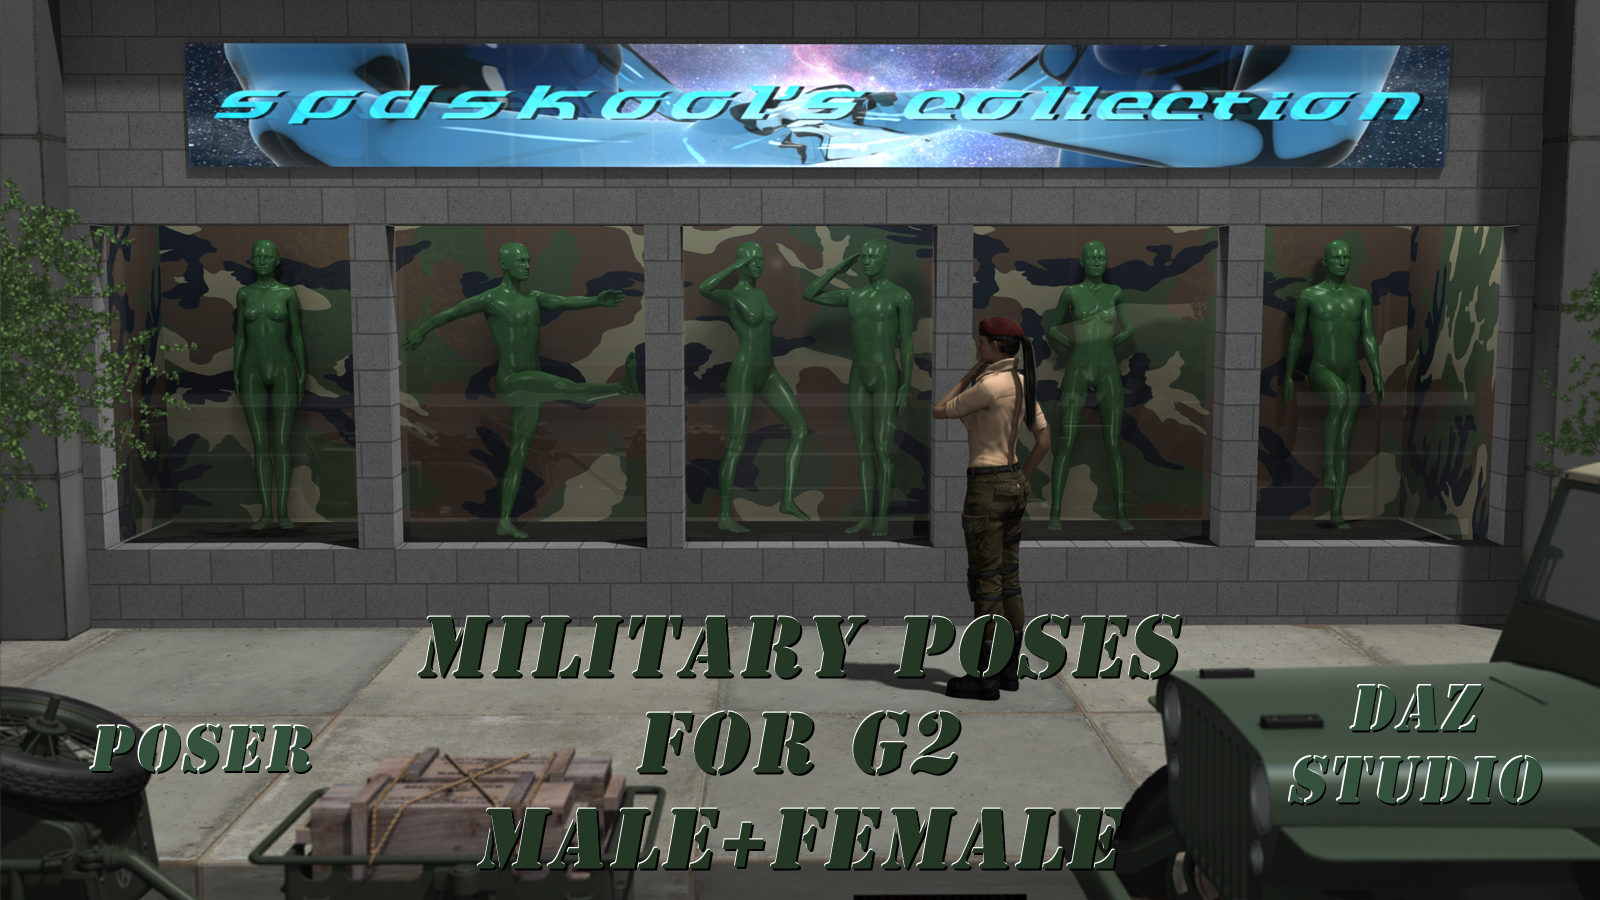 Military Poses for G2 by spdskool